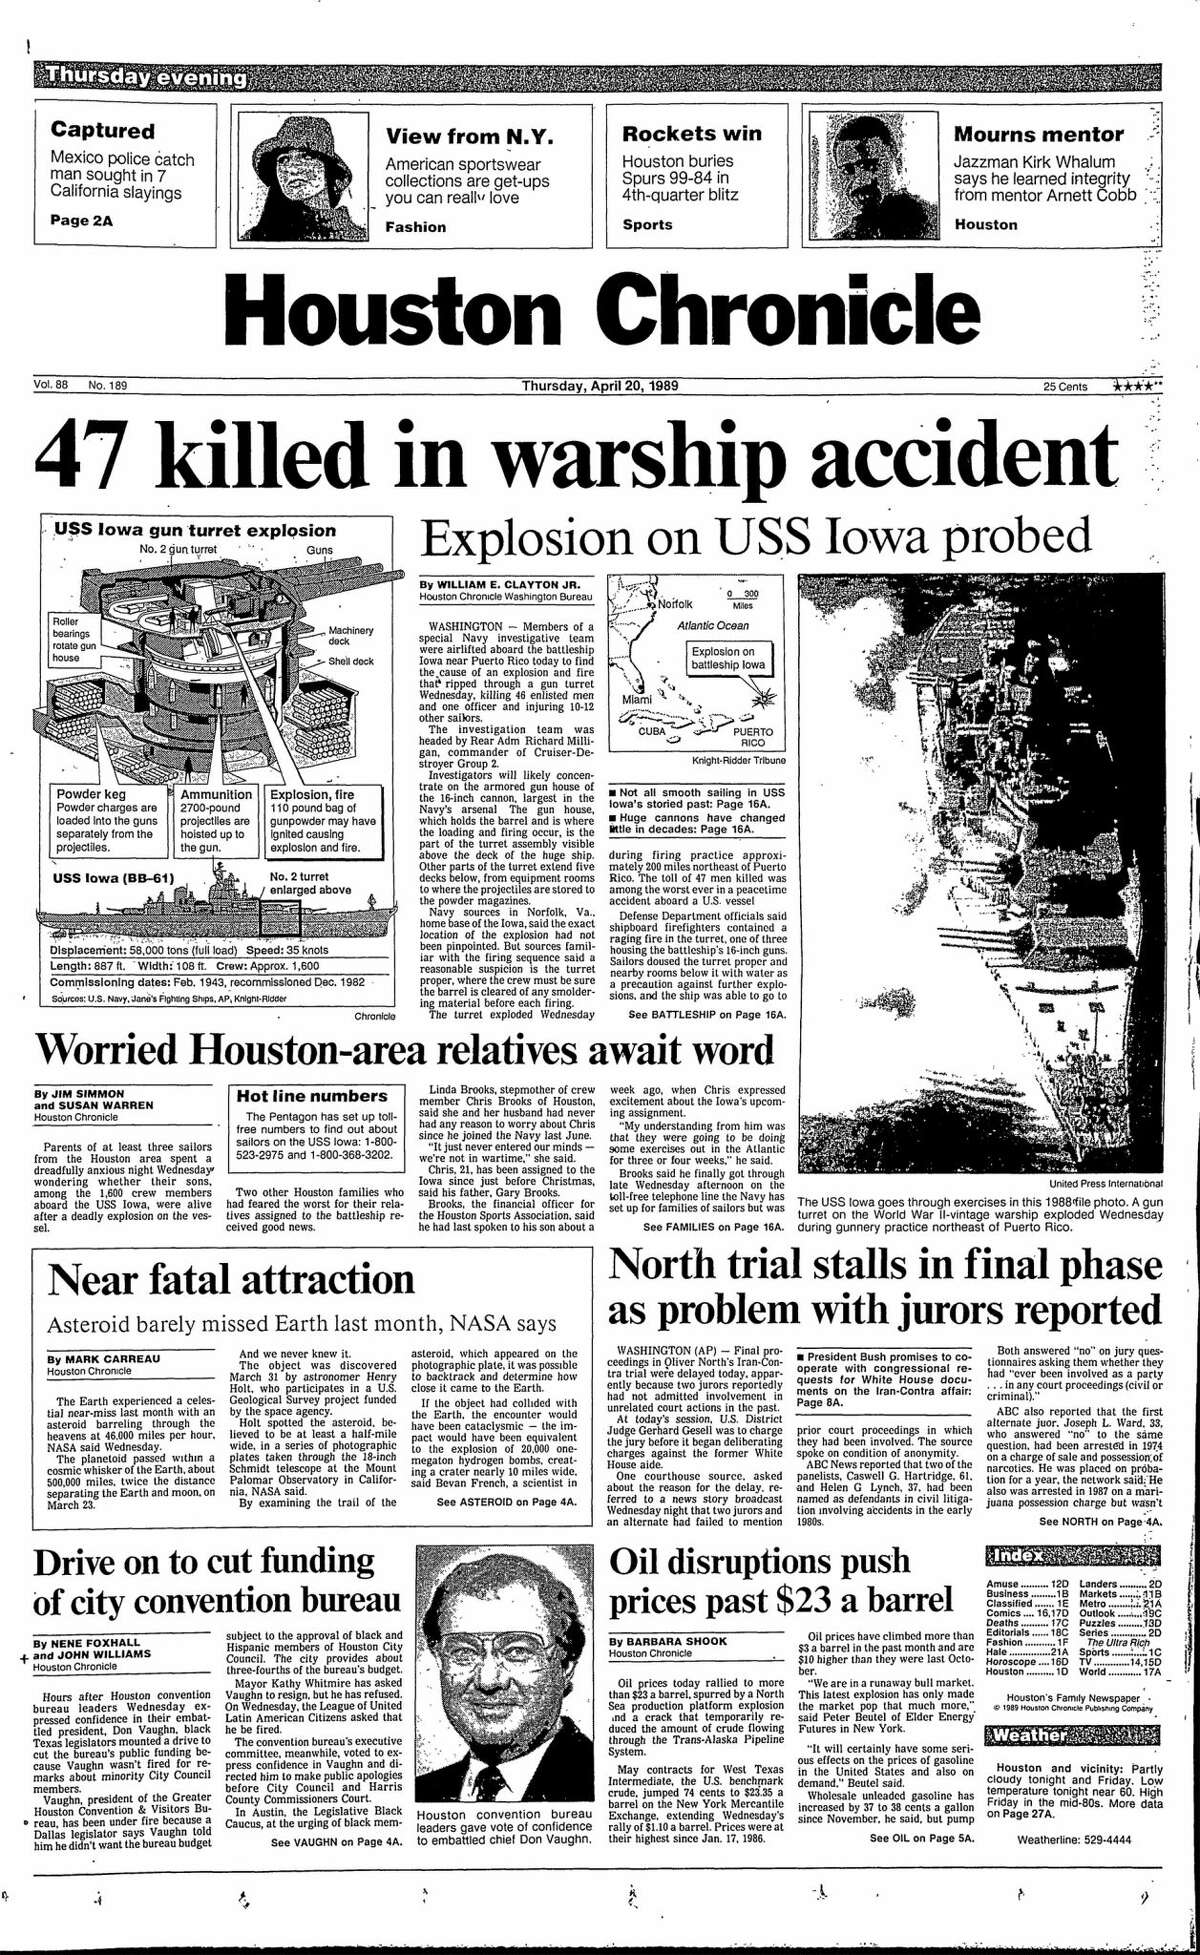 Houston Chronicle front page from April 20, 1989.